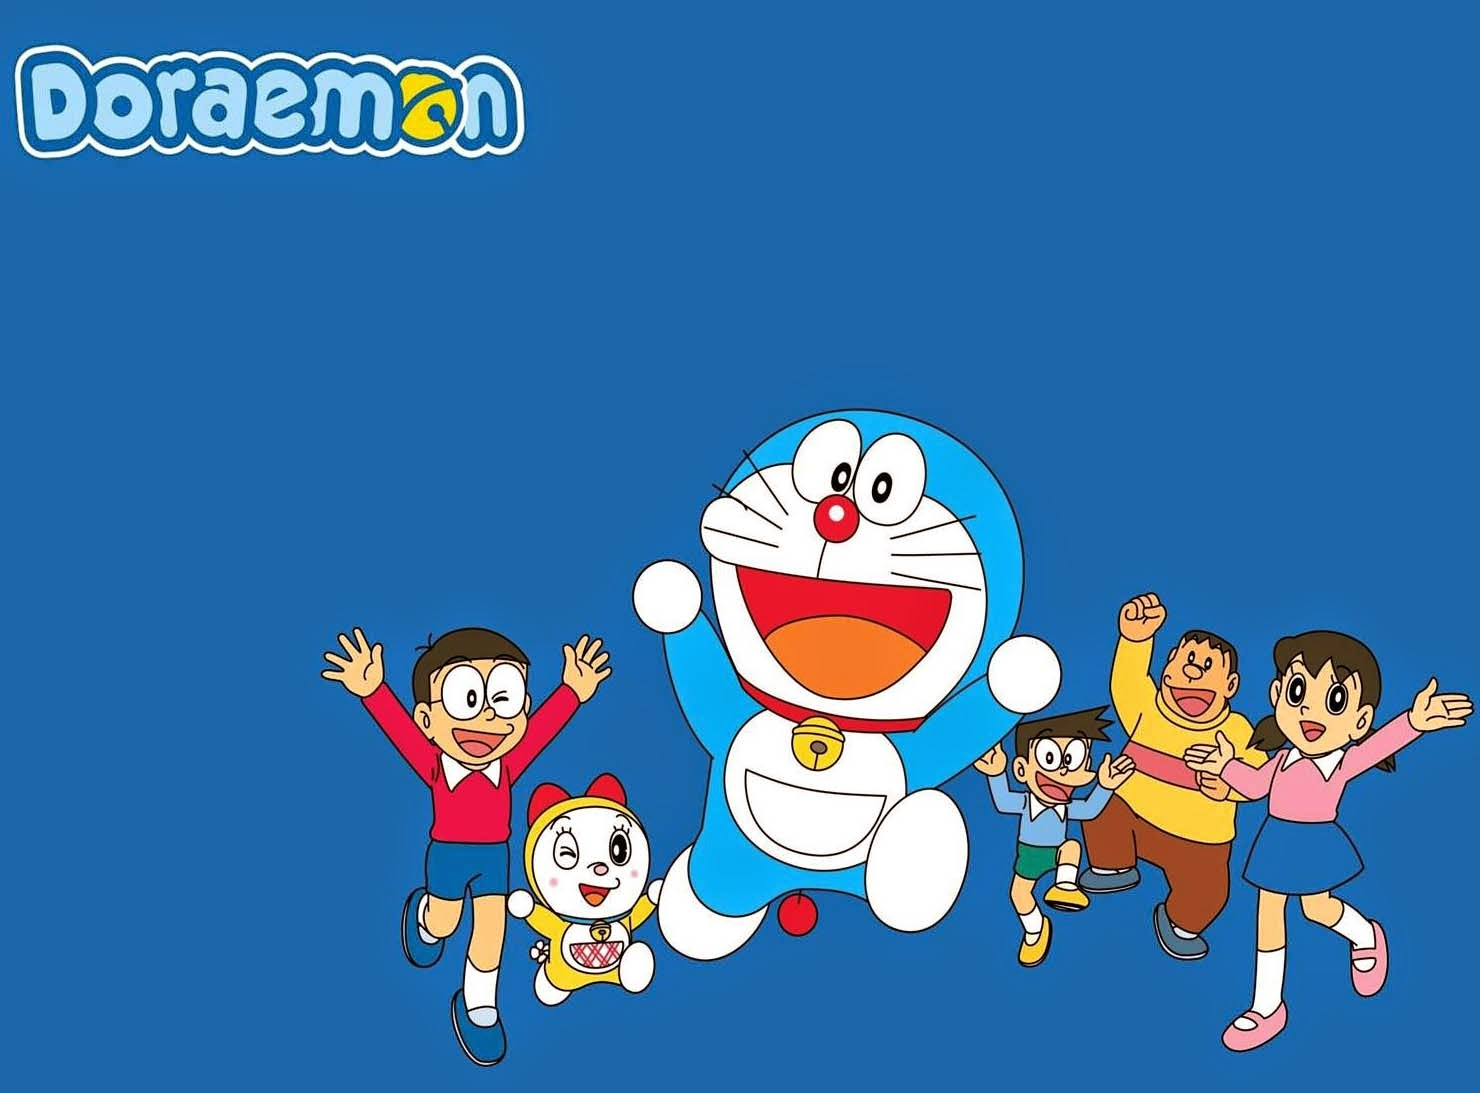 Doremon Is A Most Amazing And Popular Cartoon In The World. The Doremon  Manga Series Was First Published In December 1969.